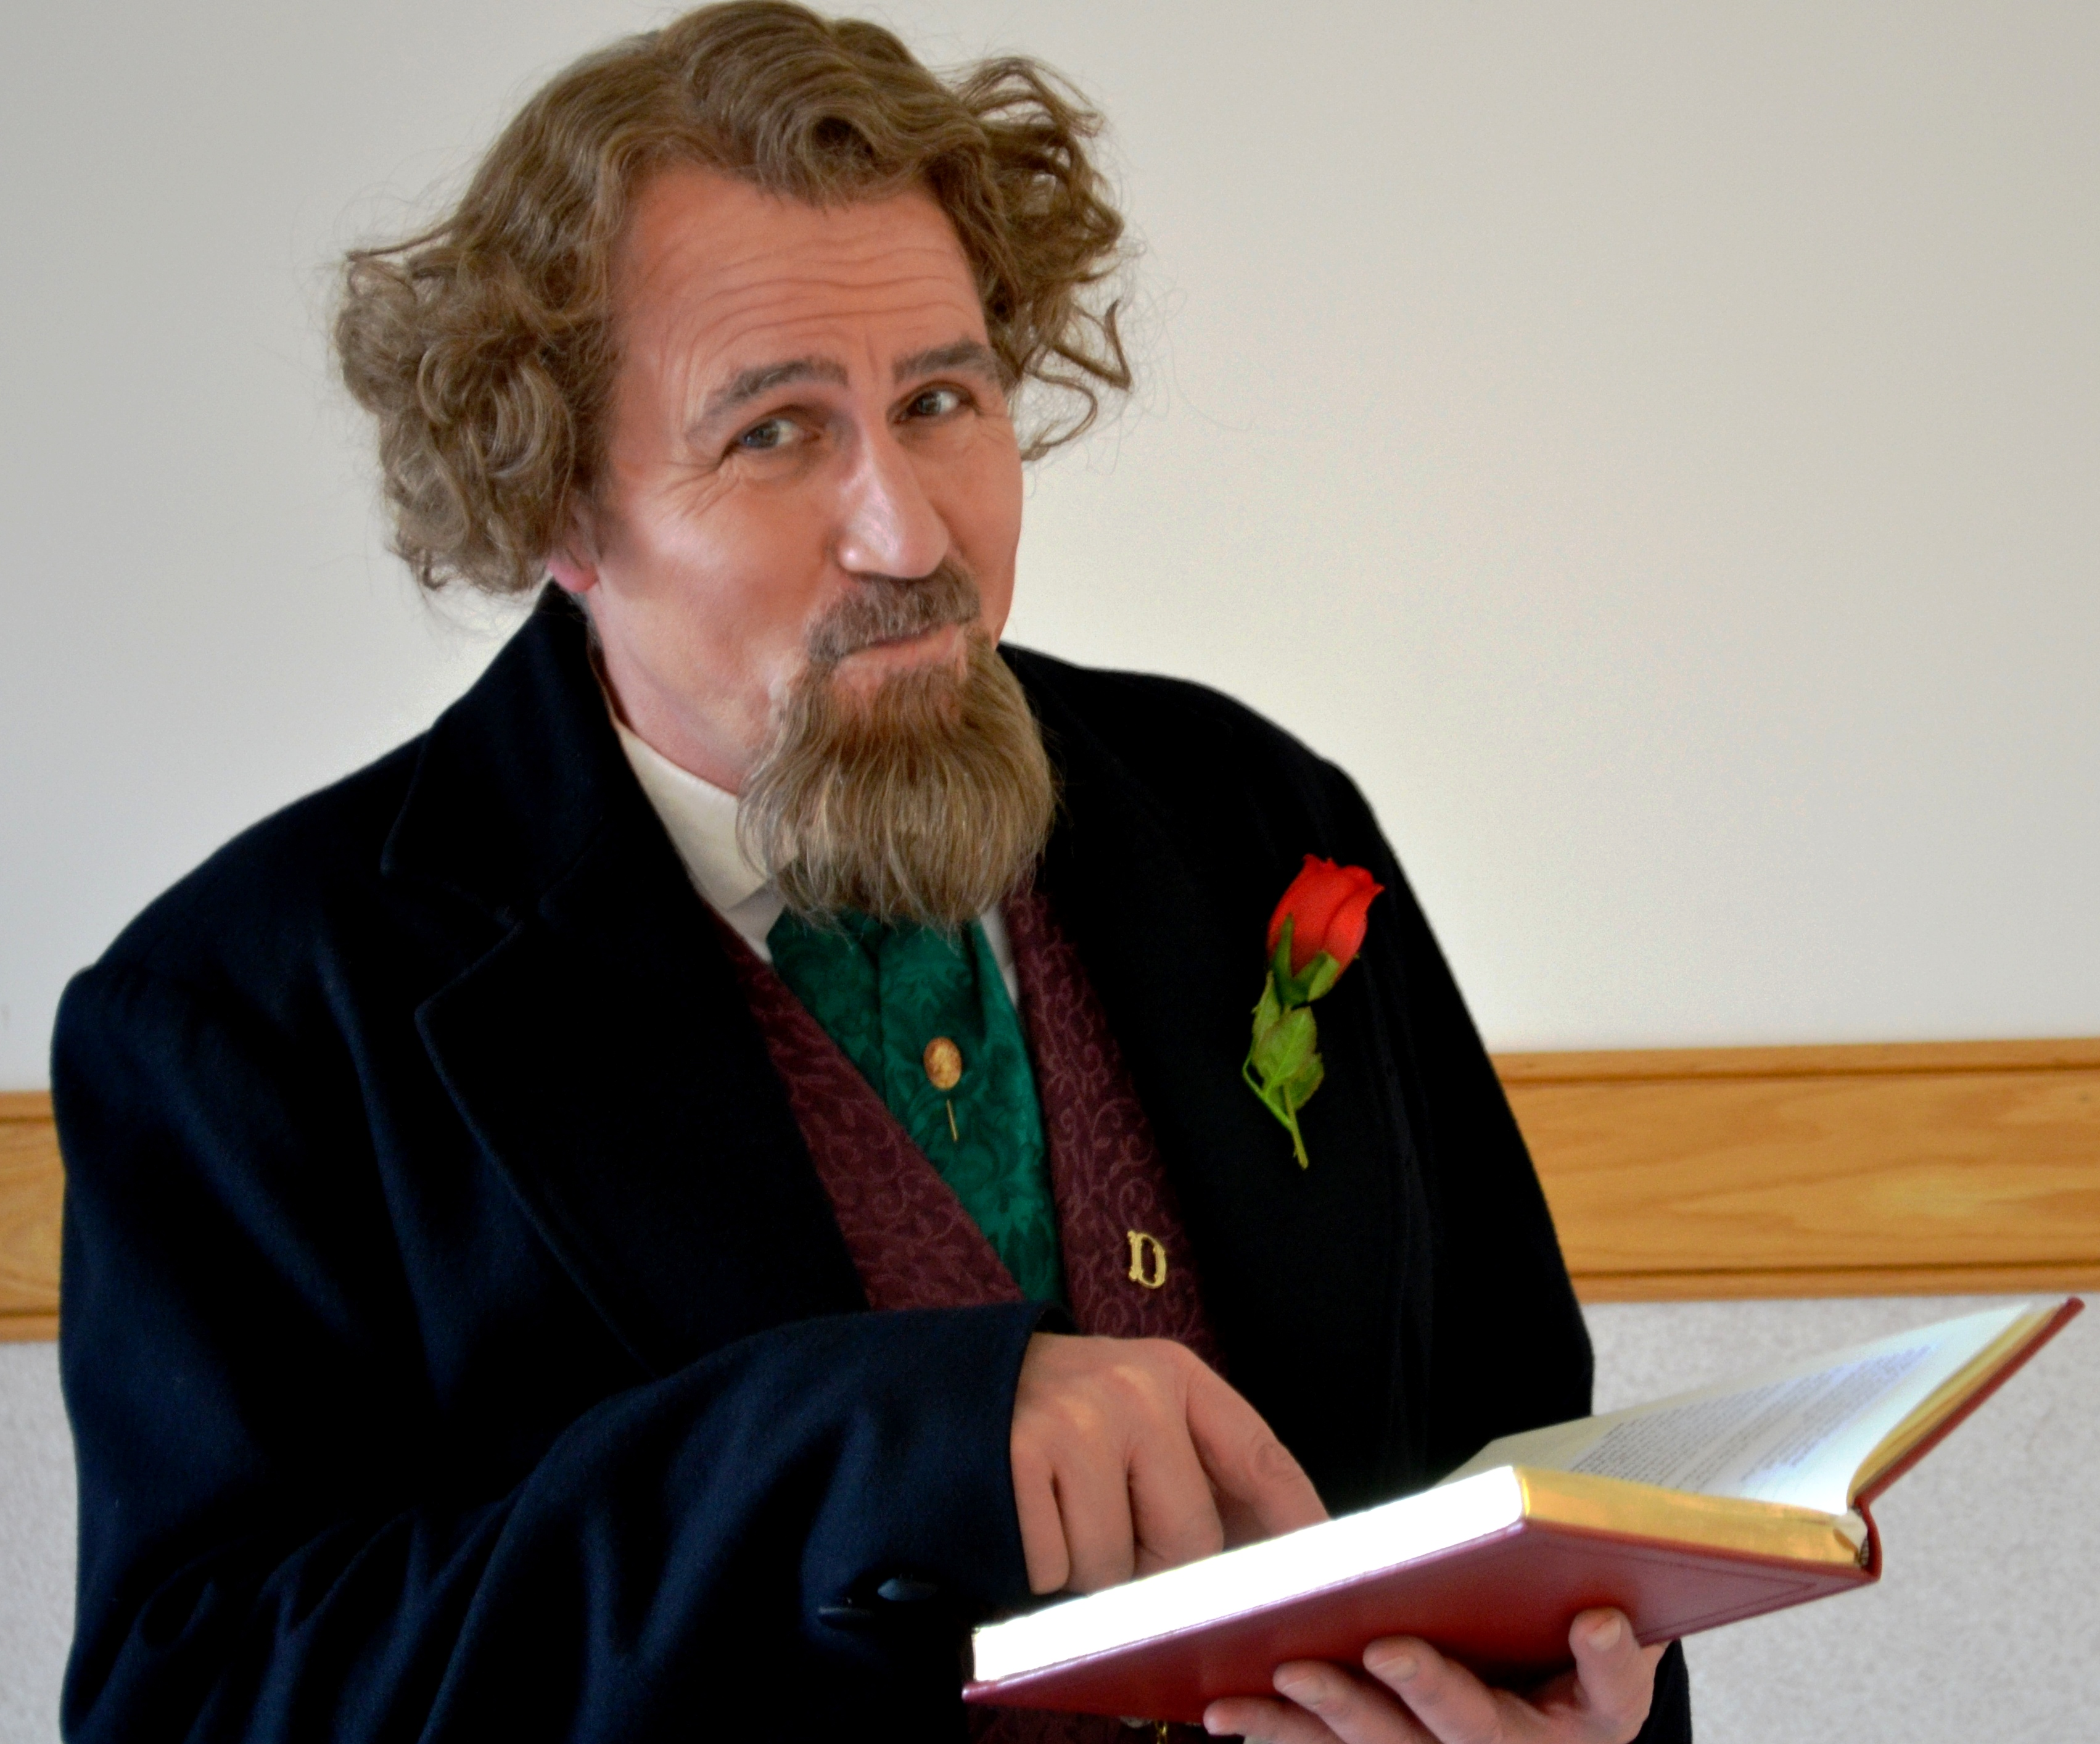 Mike Randall Christmas 2020 Charles Dickens A Christmas Carol, Articles about A Christmas